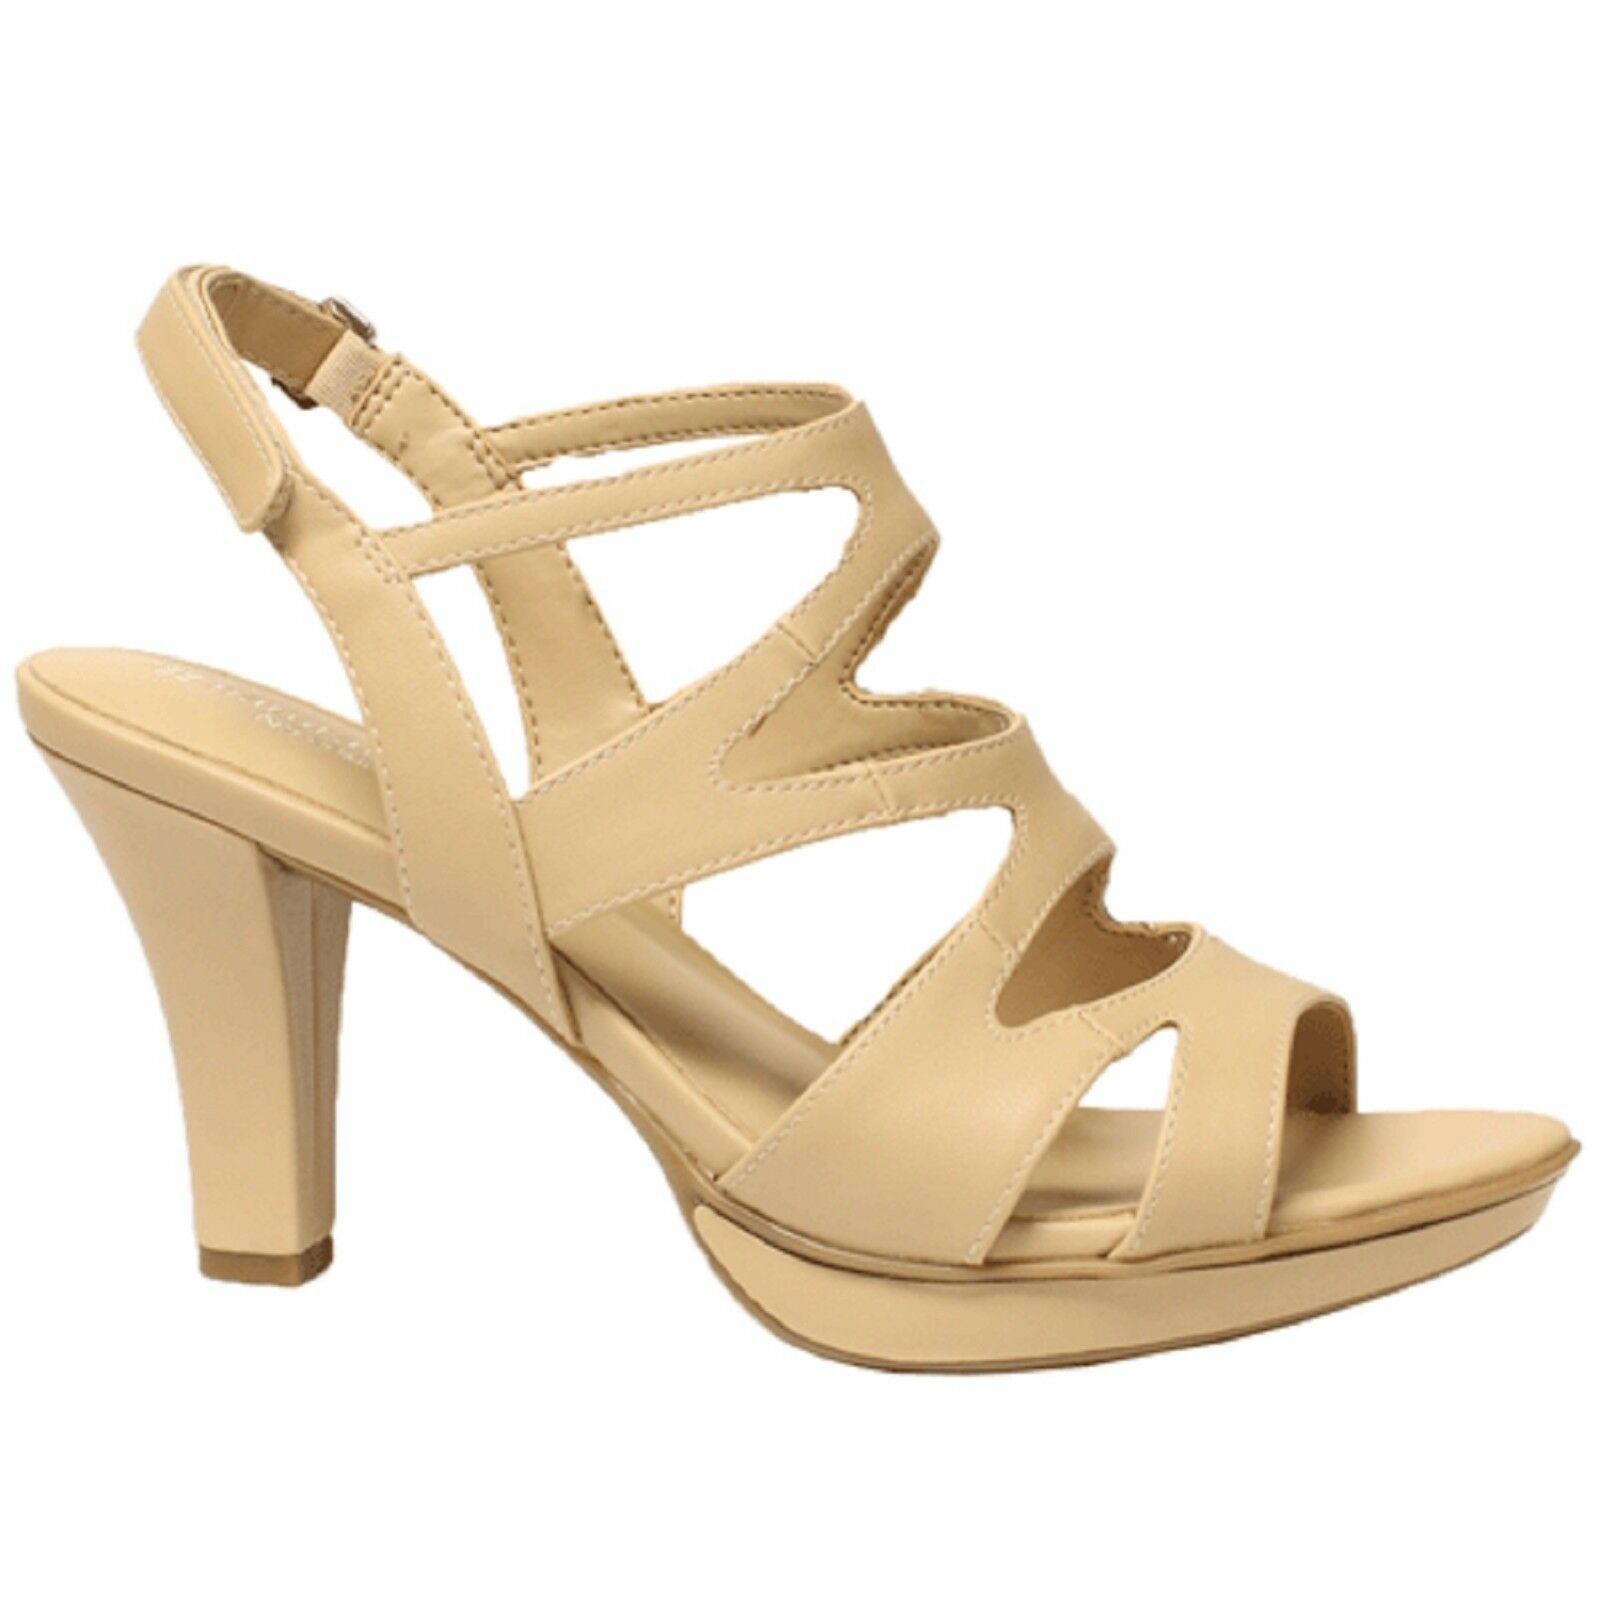 Women Naturalizer Naturalizer Naturalizer DIANNA E5554S4901 Tender Taupe Sticking Strap Heel Pump shoes 82c255